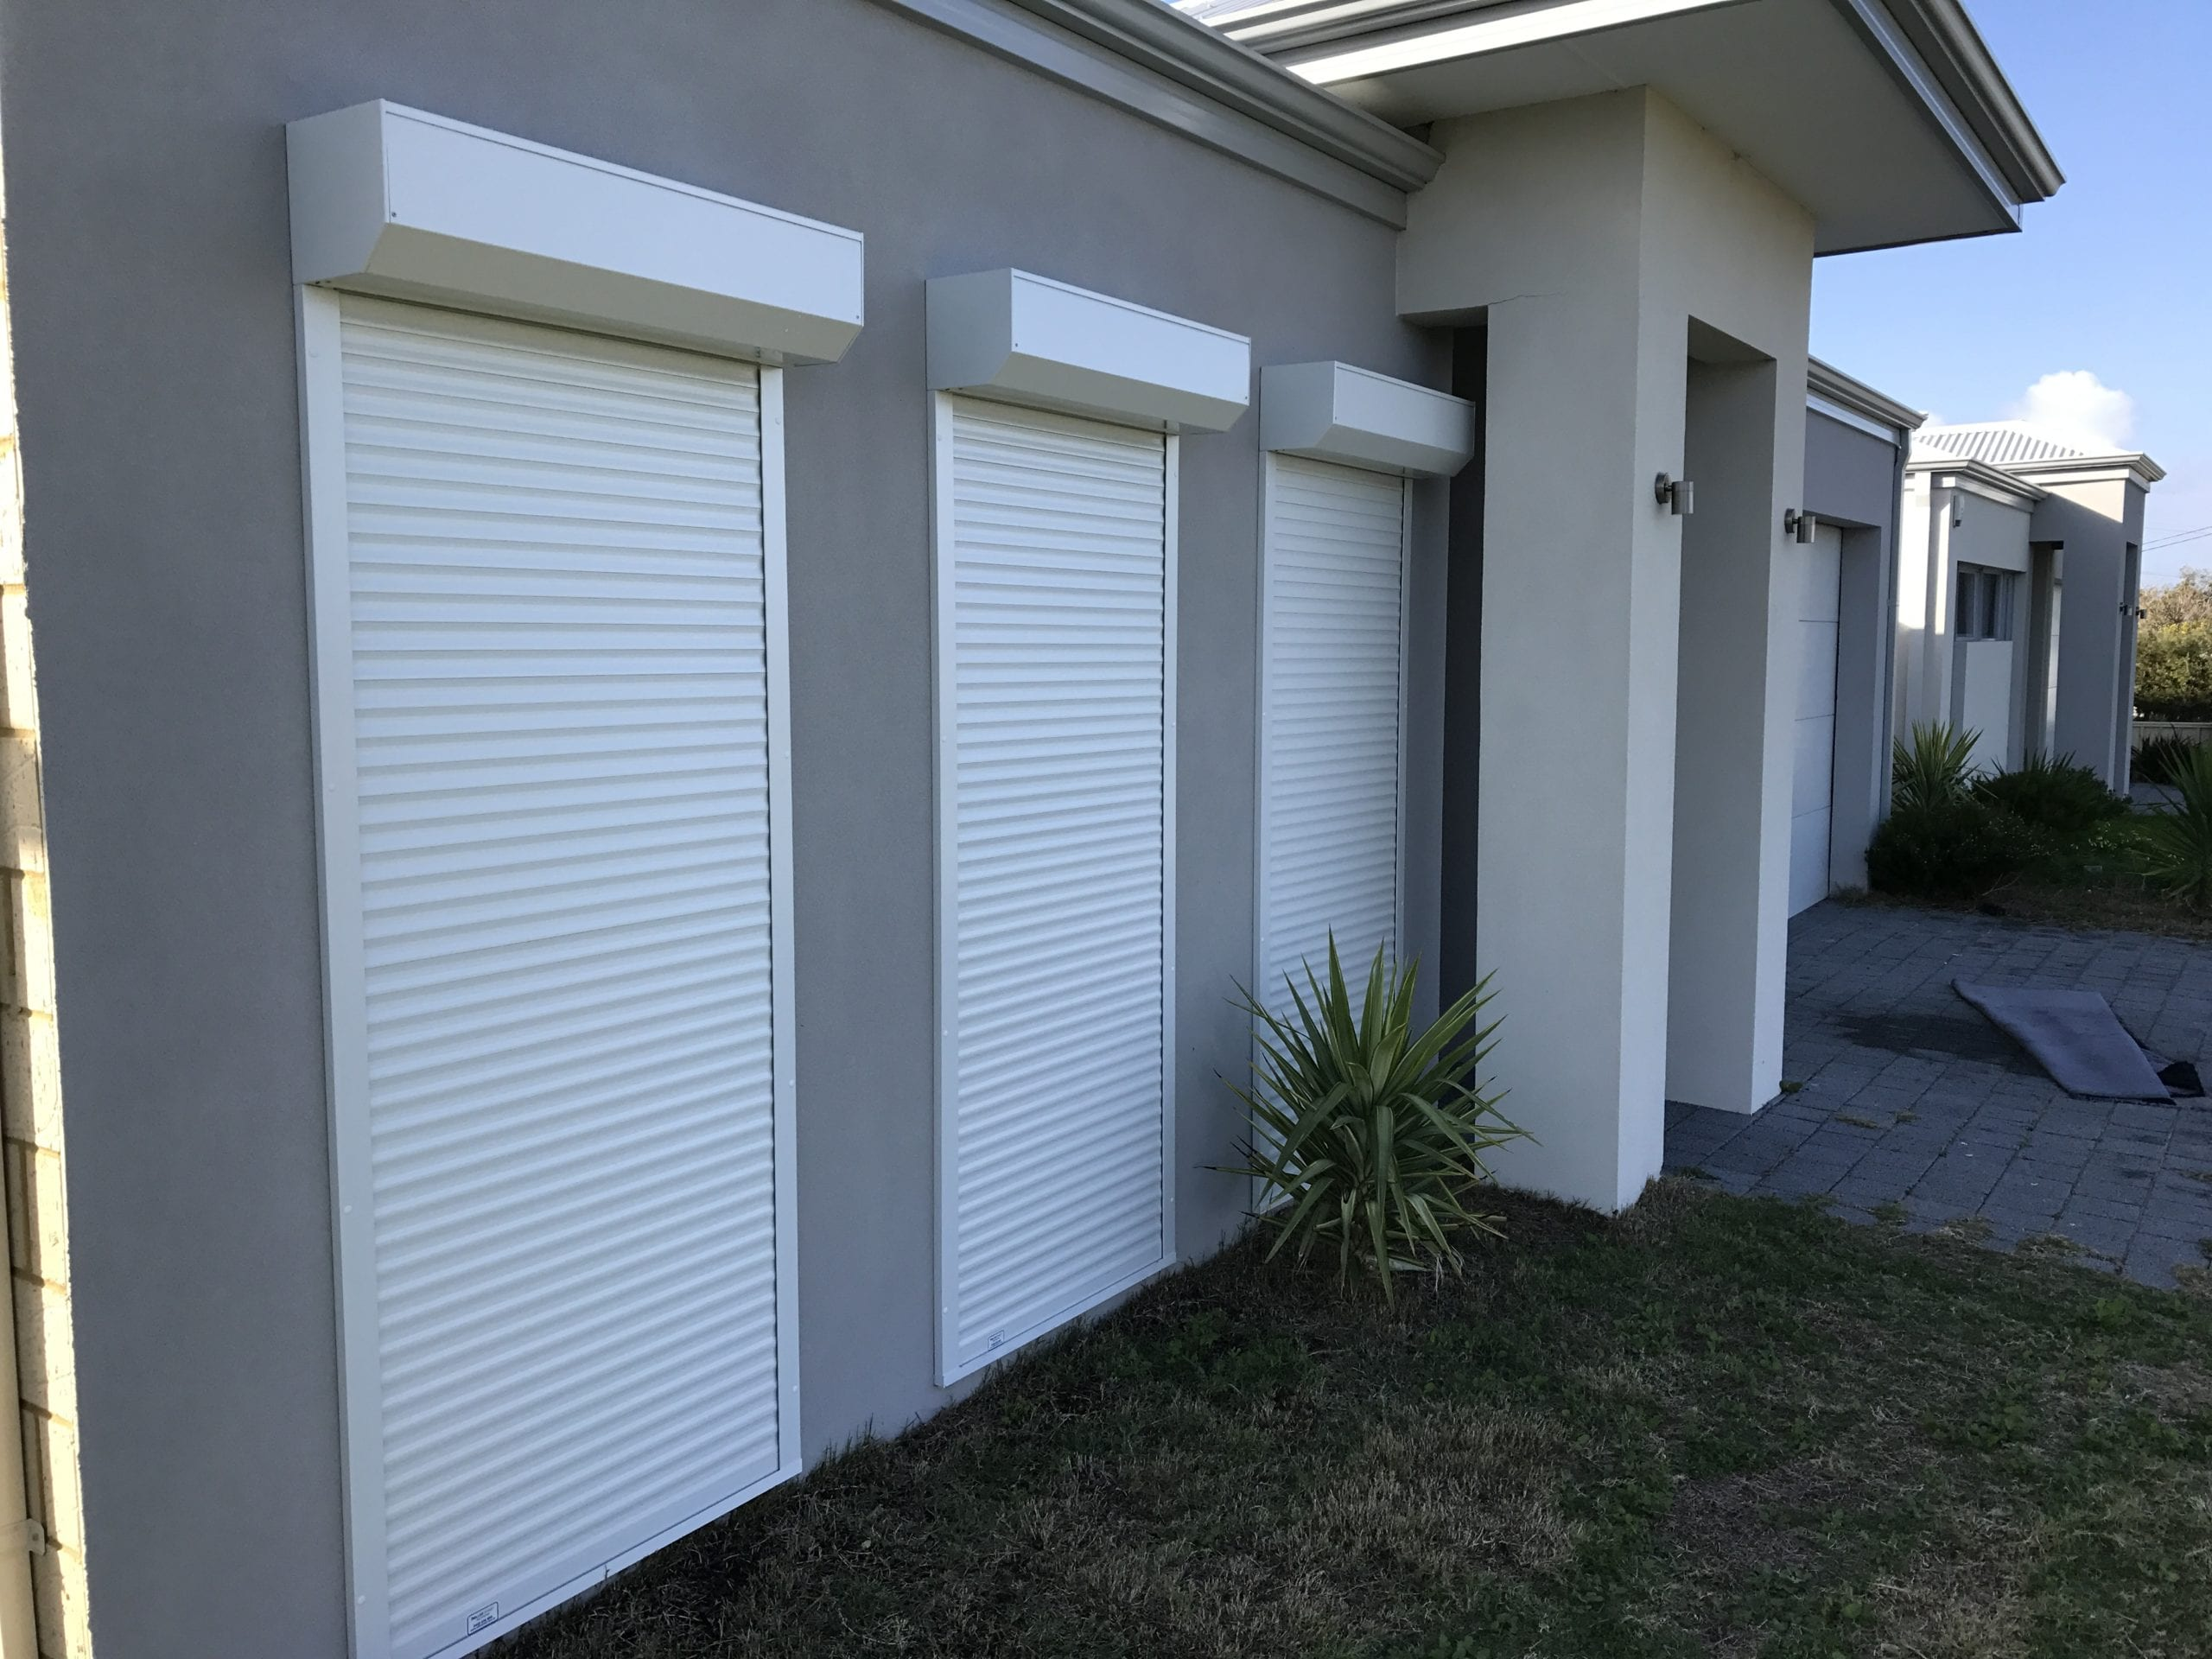 Tips to Maintain Your Roller Shutters to Extend Their Life